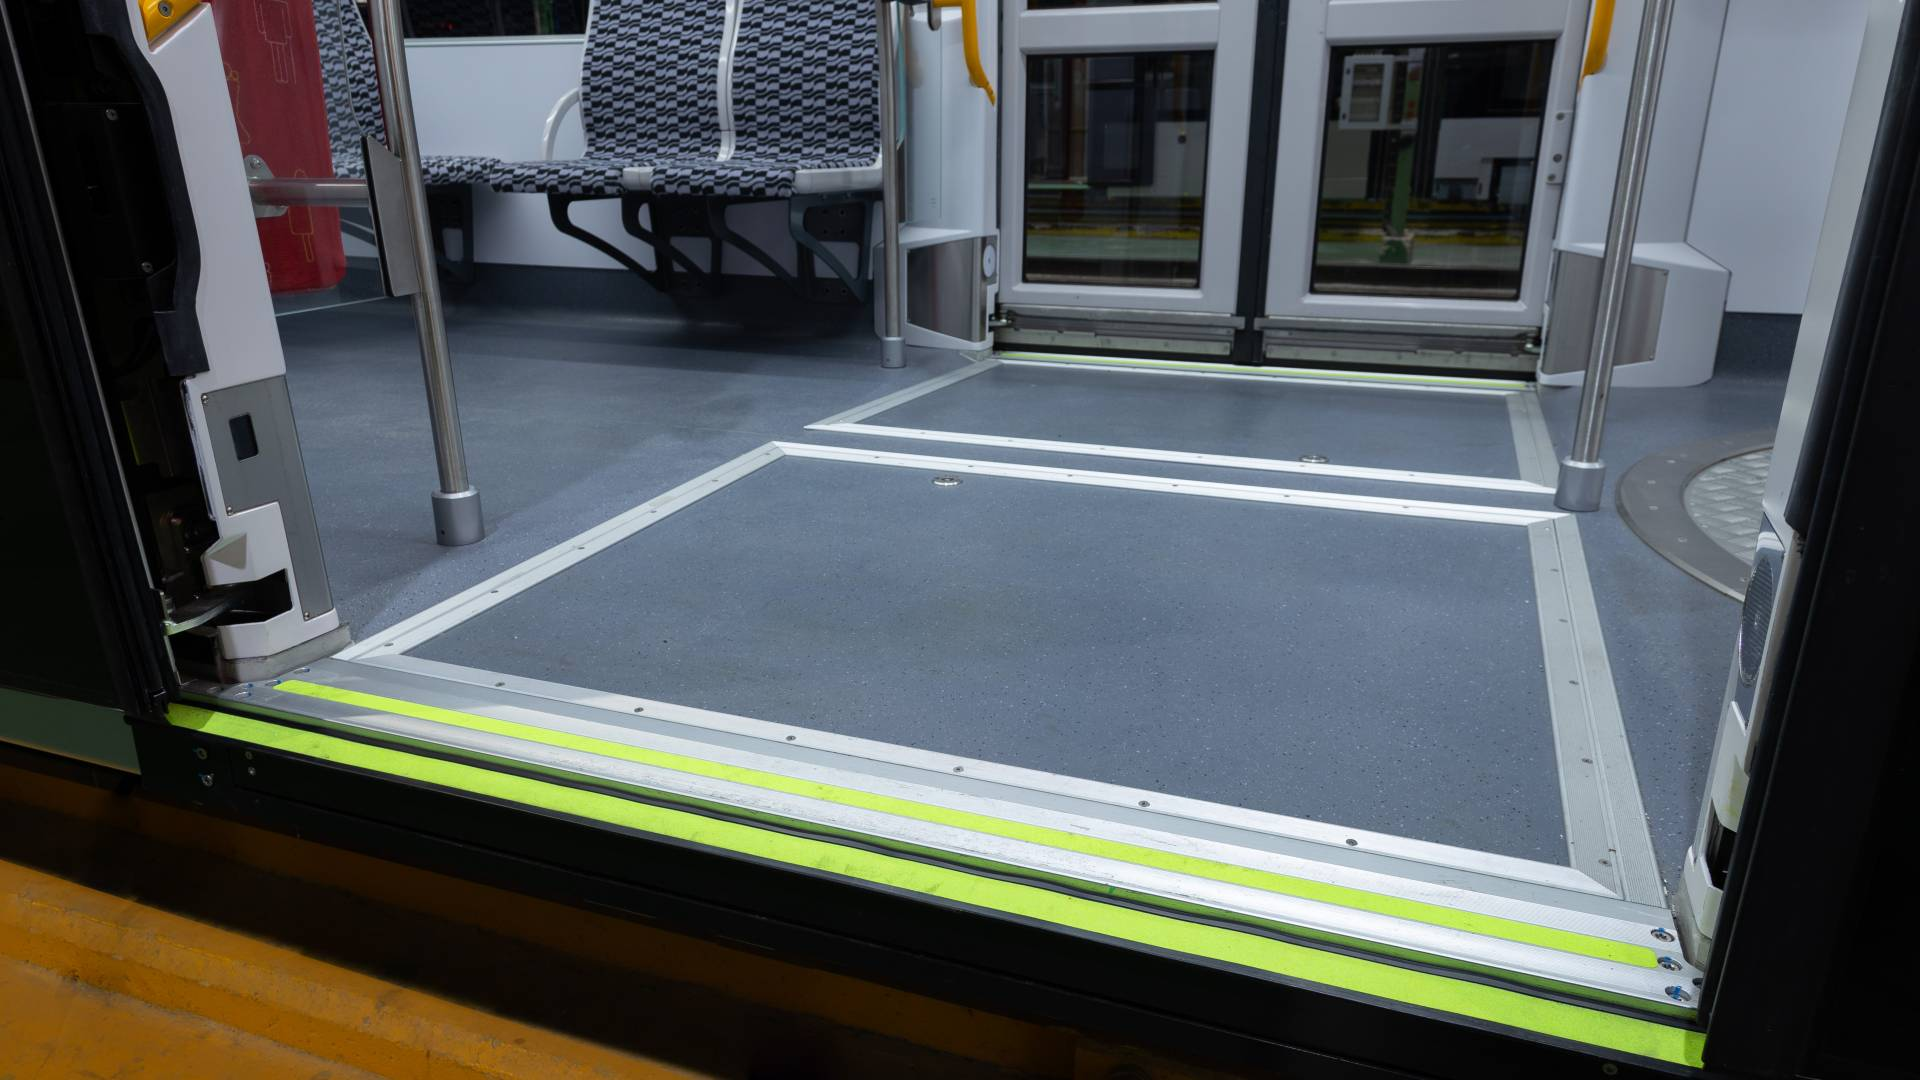 The Masats ramp selected for the Amsterdam tram